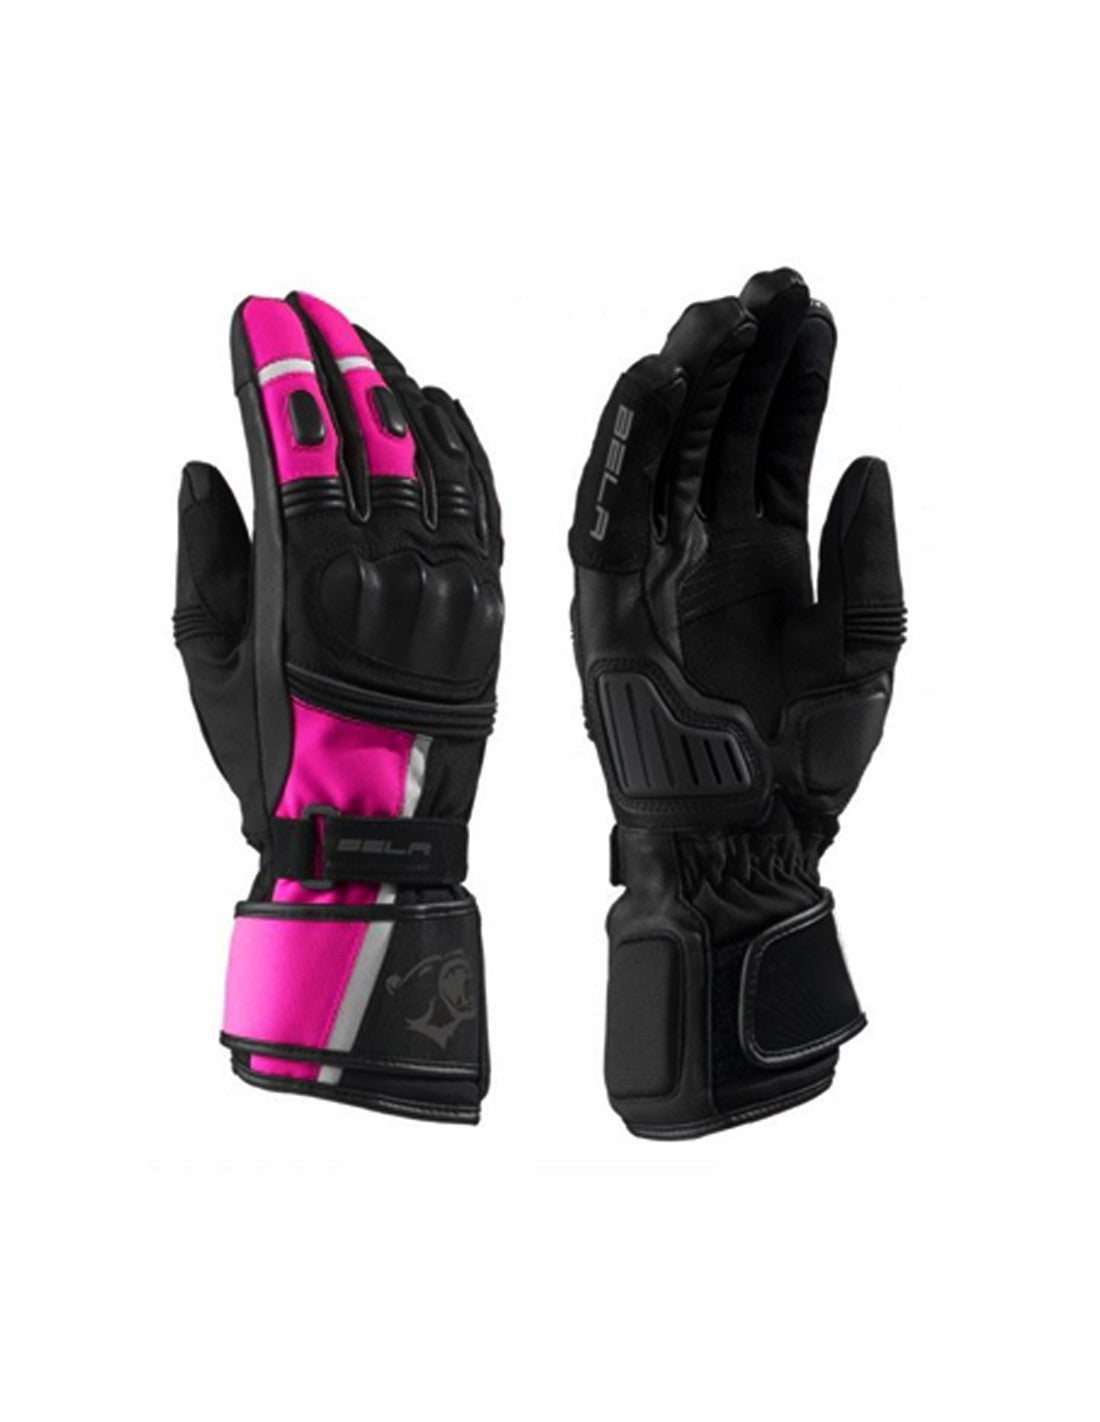 Bela Ice Winter WP Guanti Moto Donna Nero/Rosa